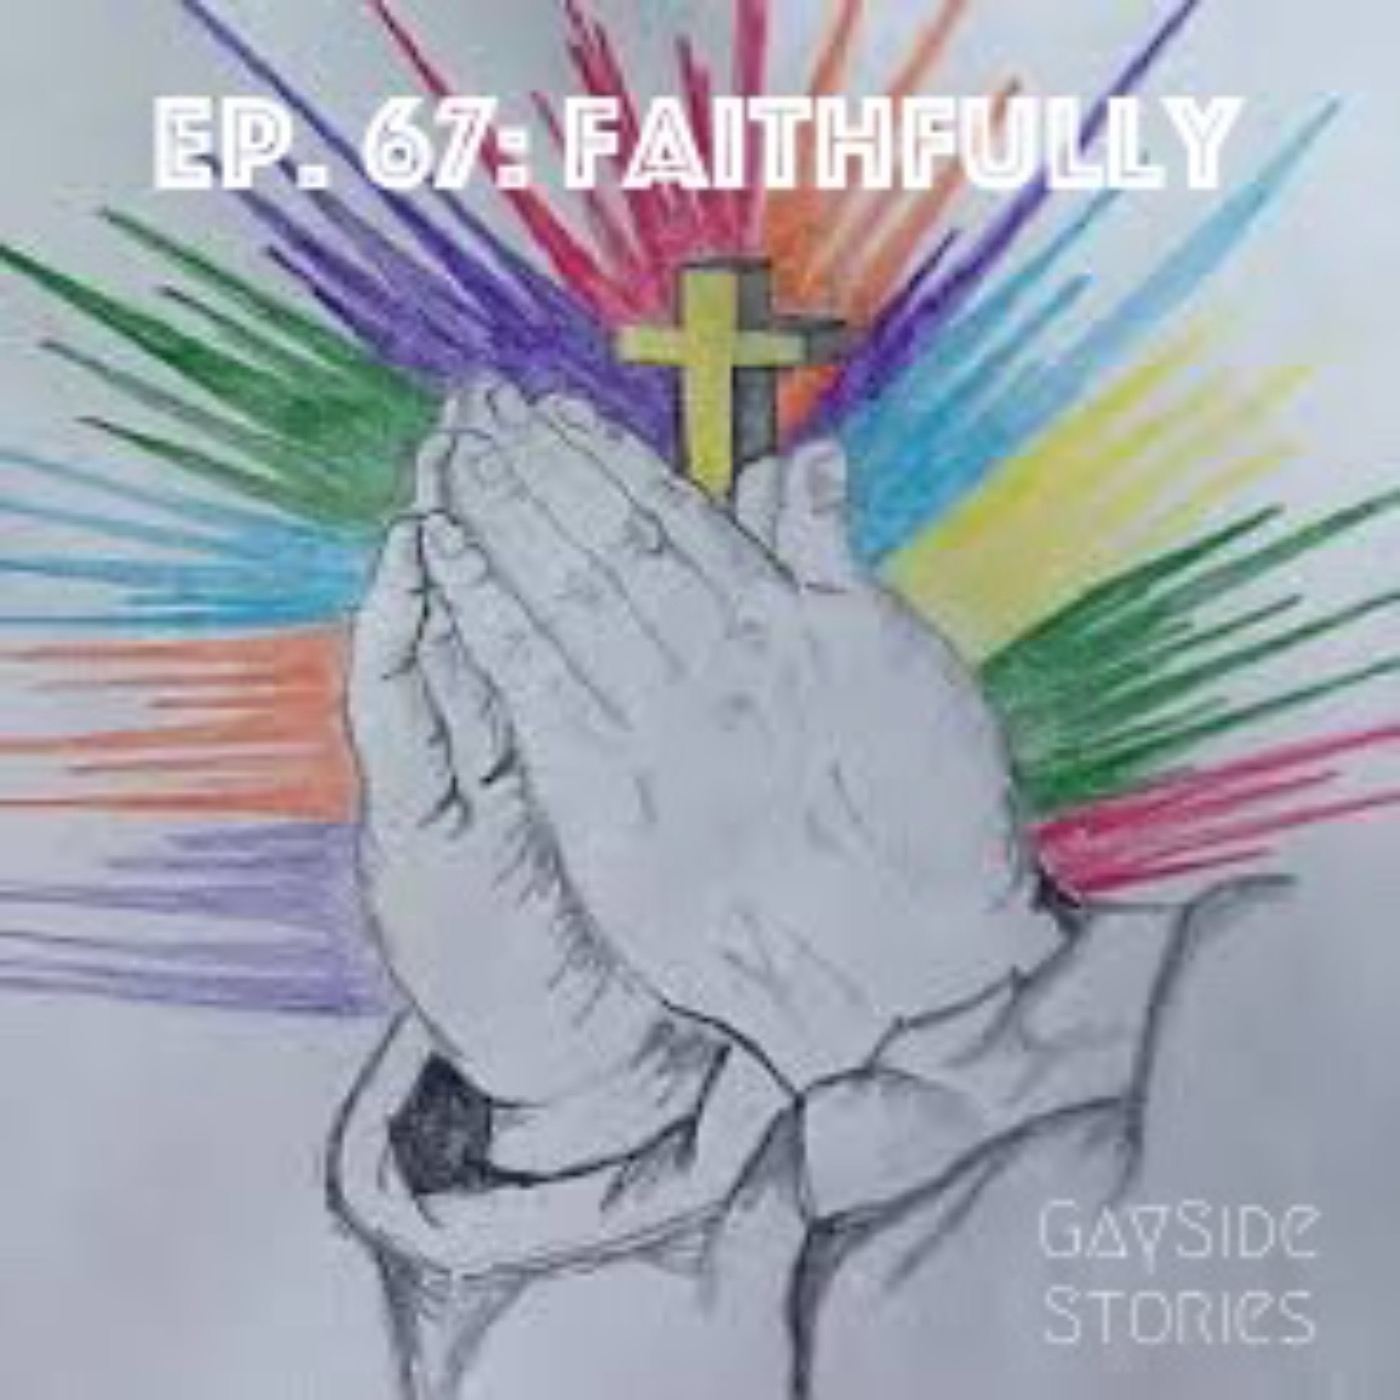 Ep. 67 - Faithfully (feat. Verdell A. Wright)